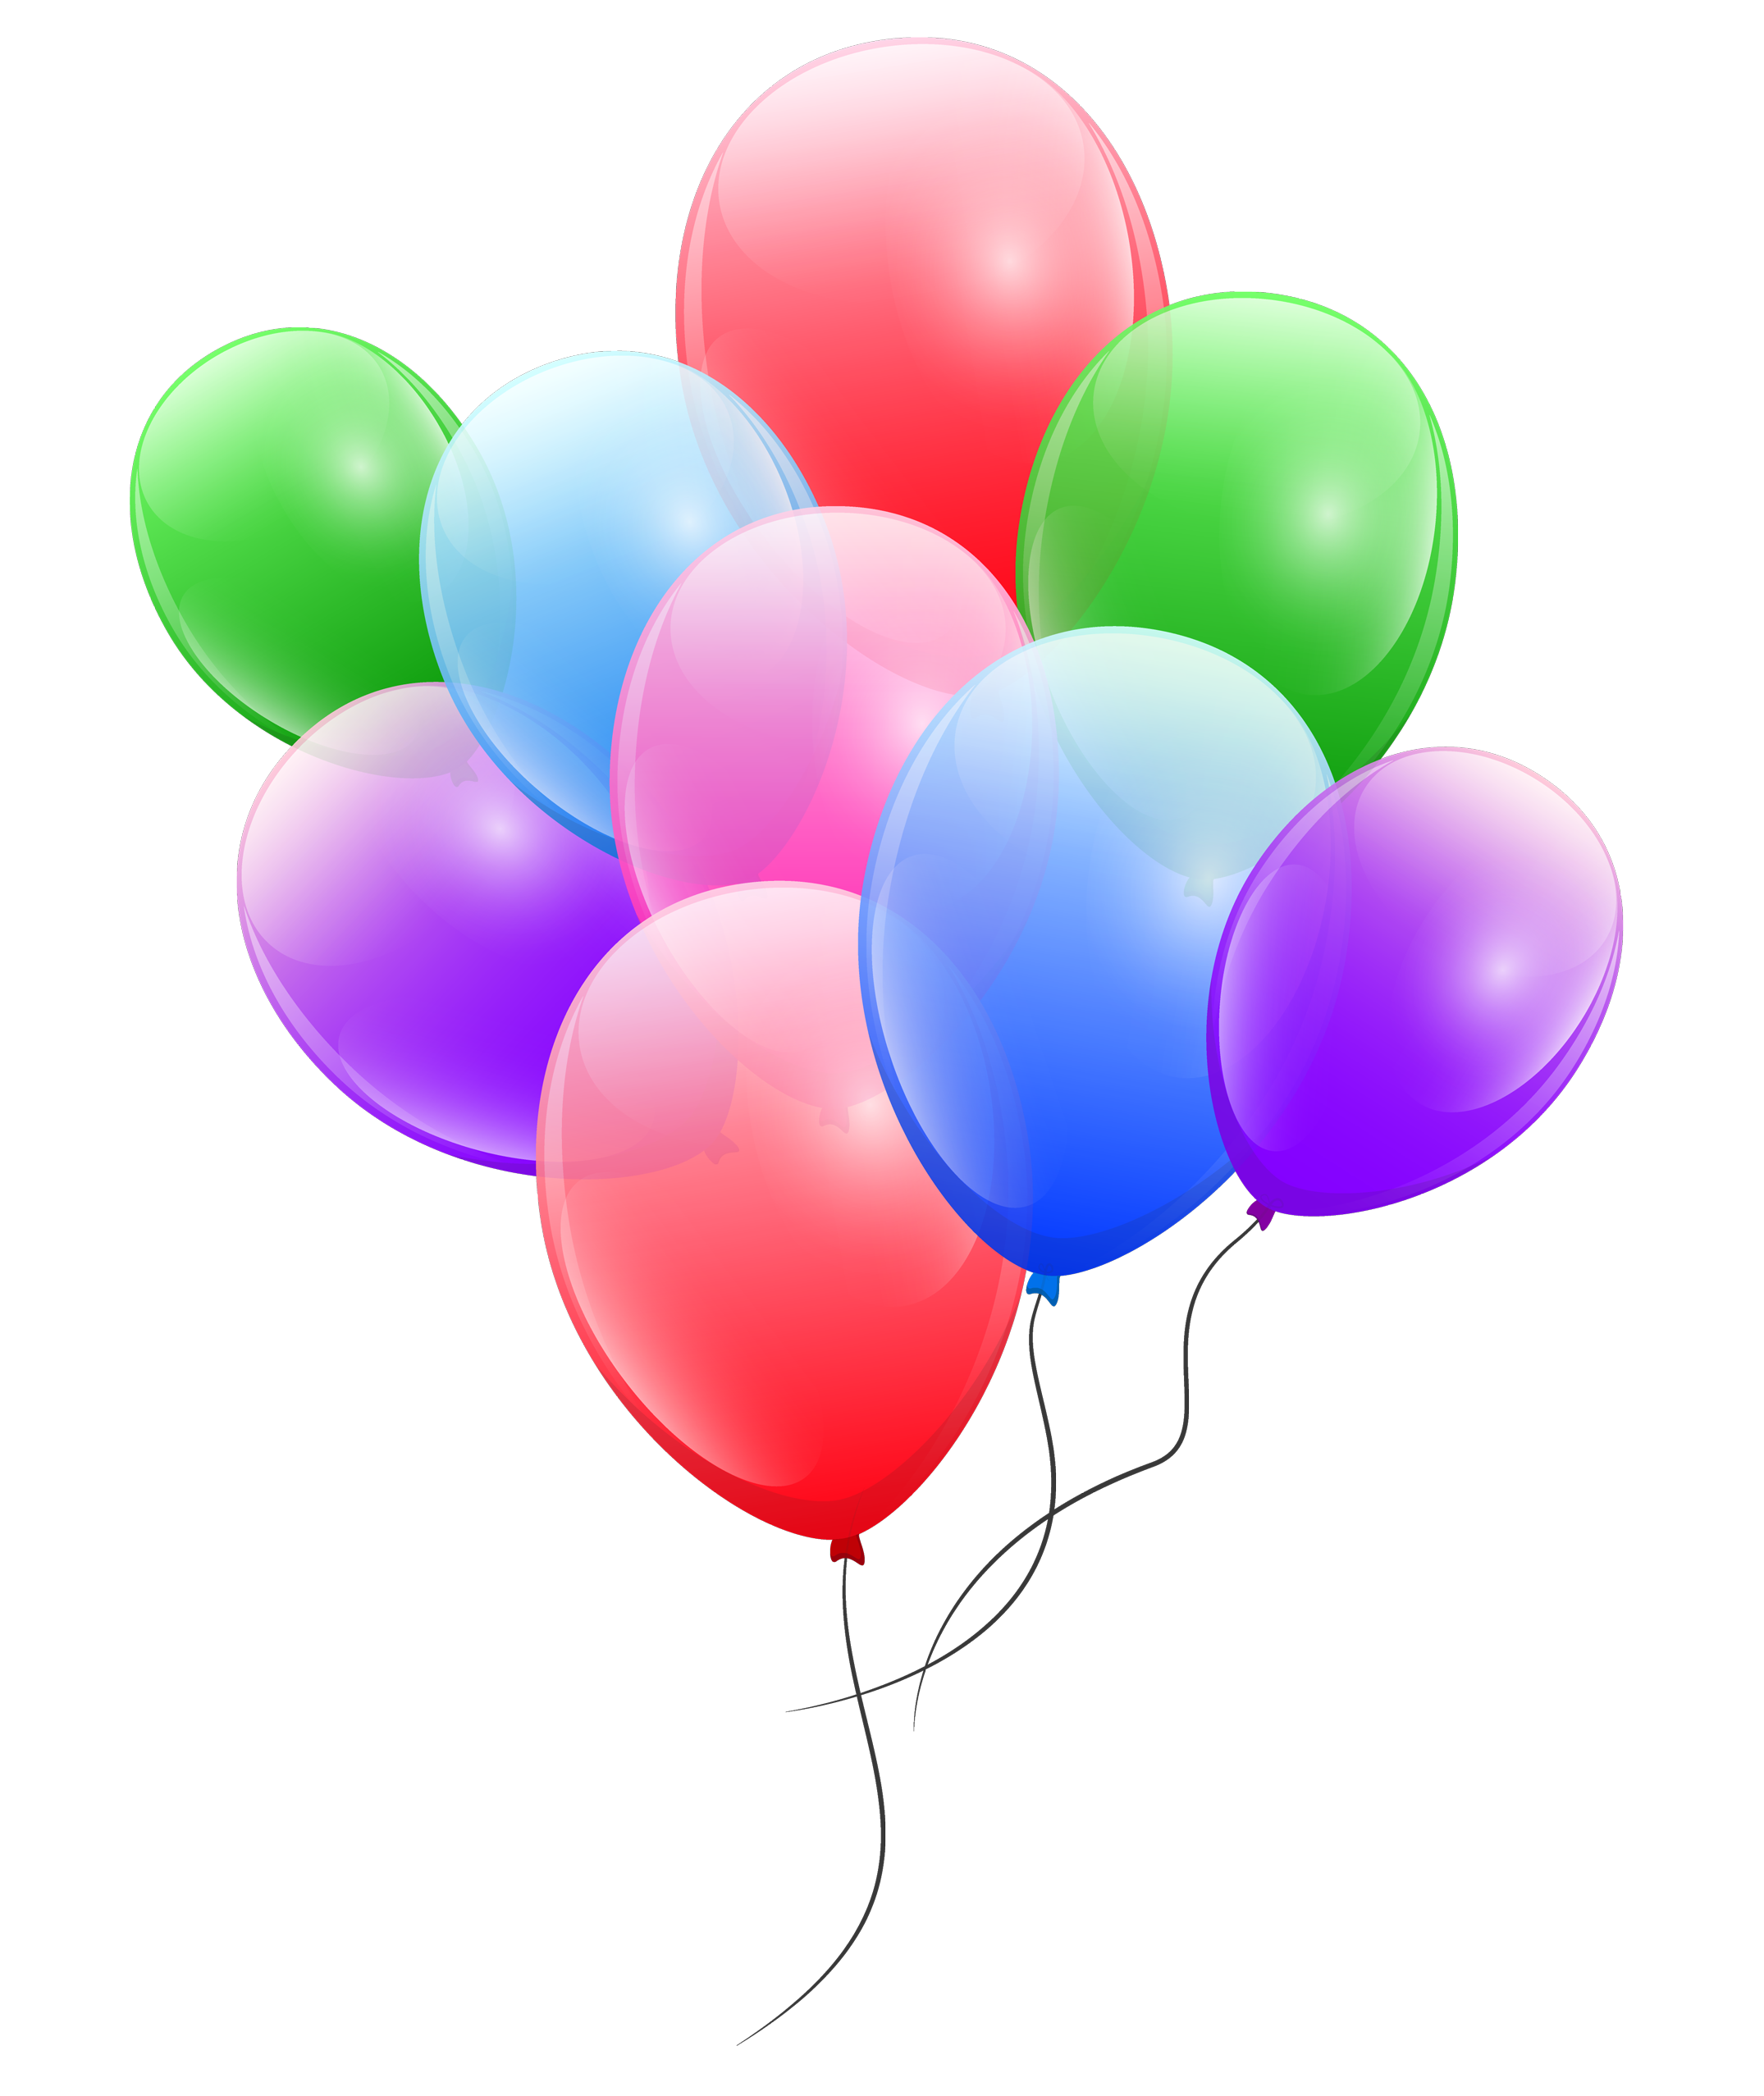 colorful balloons png image pngpix #9331